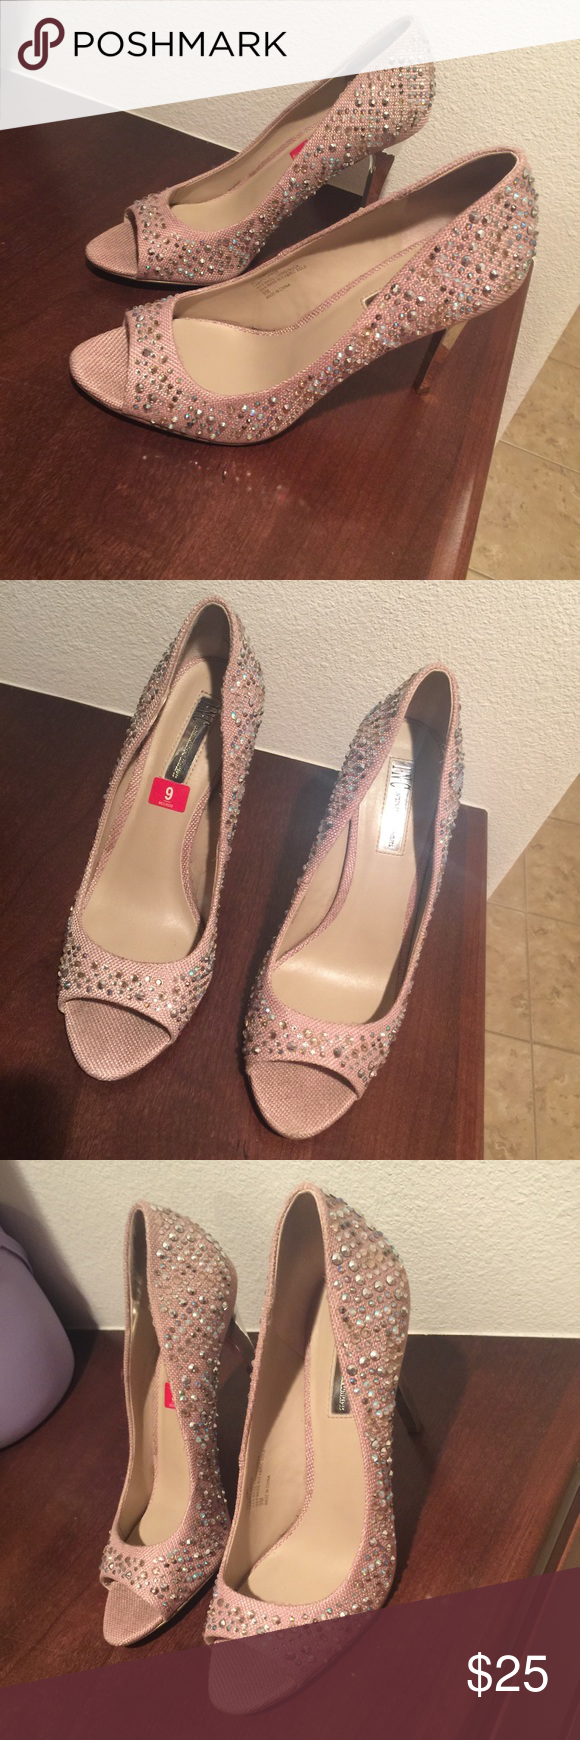 Shoes for light pink dress  Heeled light pink shoes  Pink shoes Shoes heels and Formal